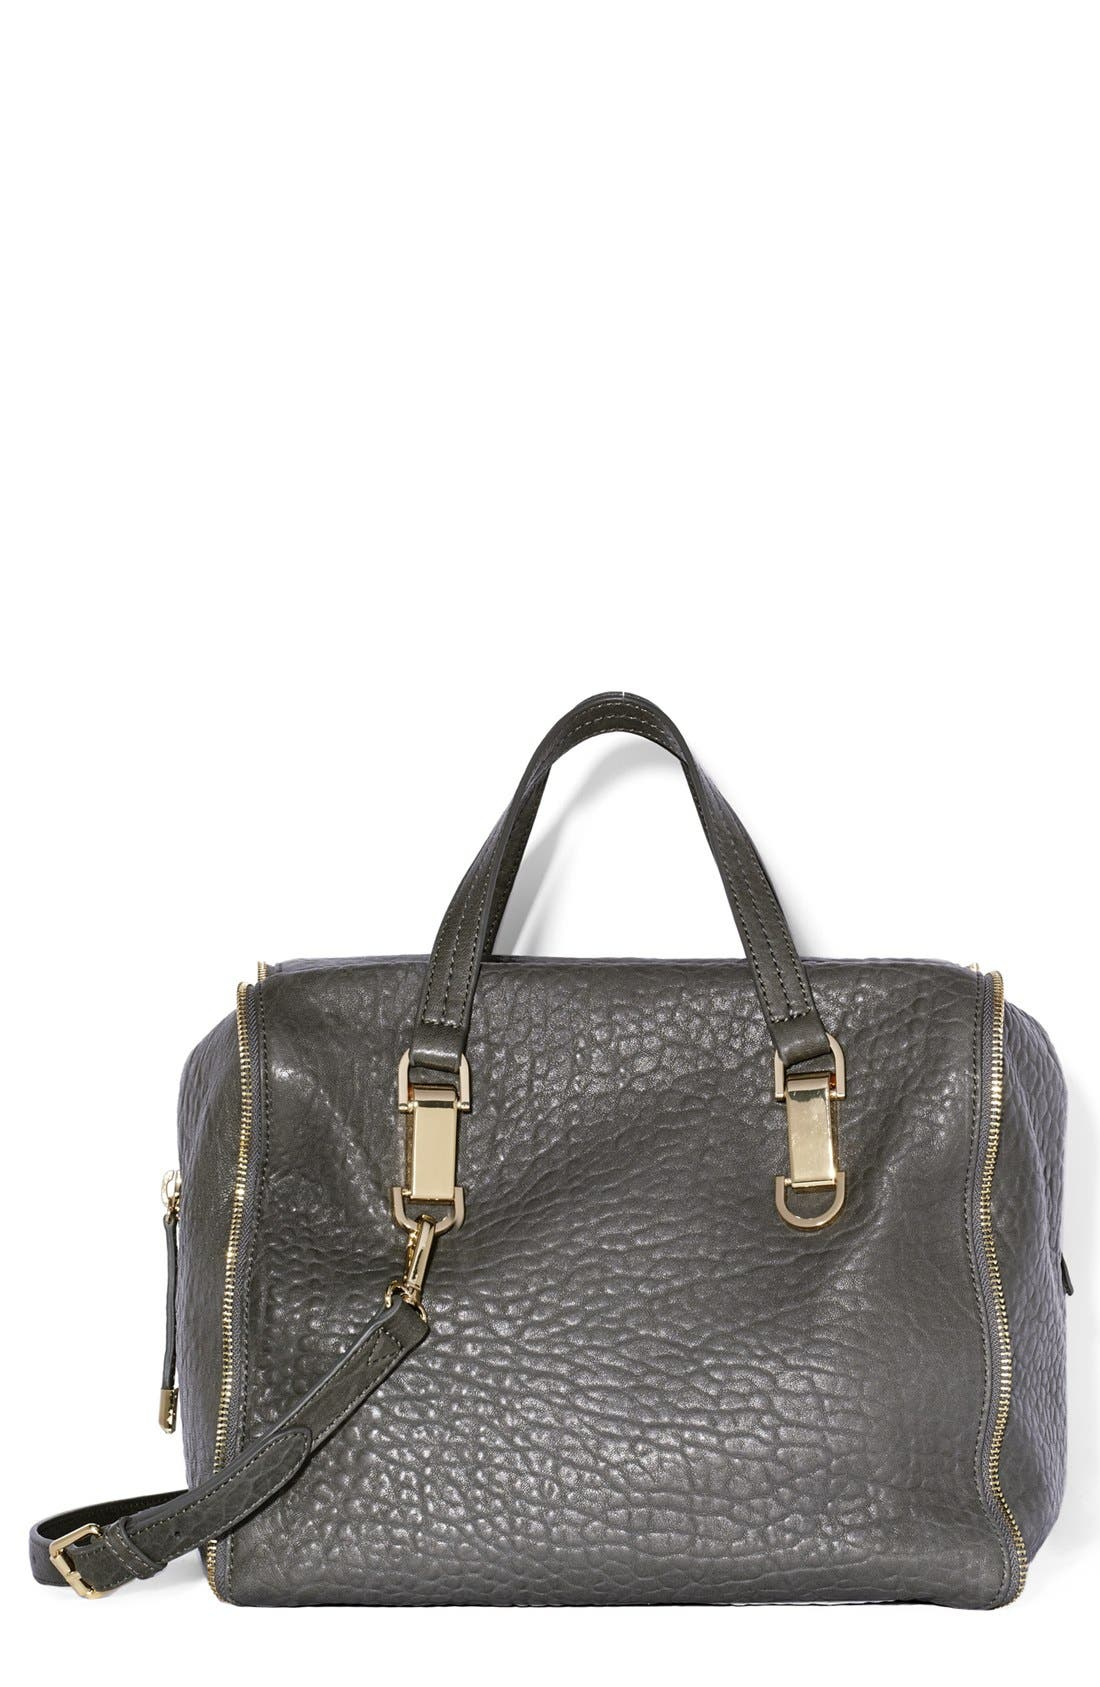 Alternate Image 1 Selected - Vince Camuto 'Riley' Leather Satchel